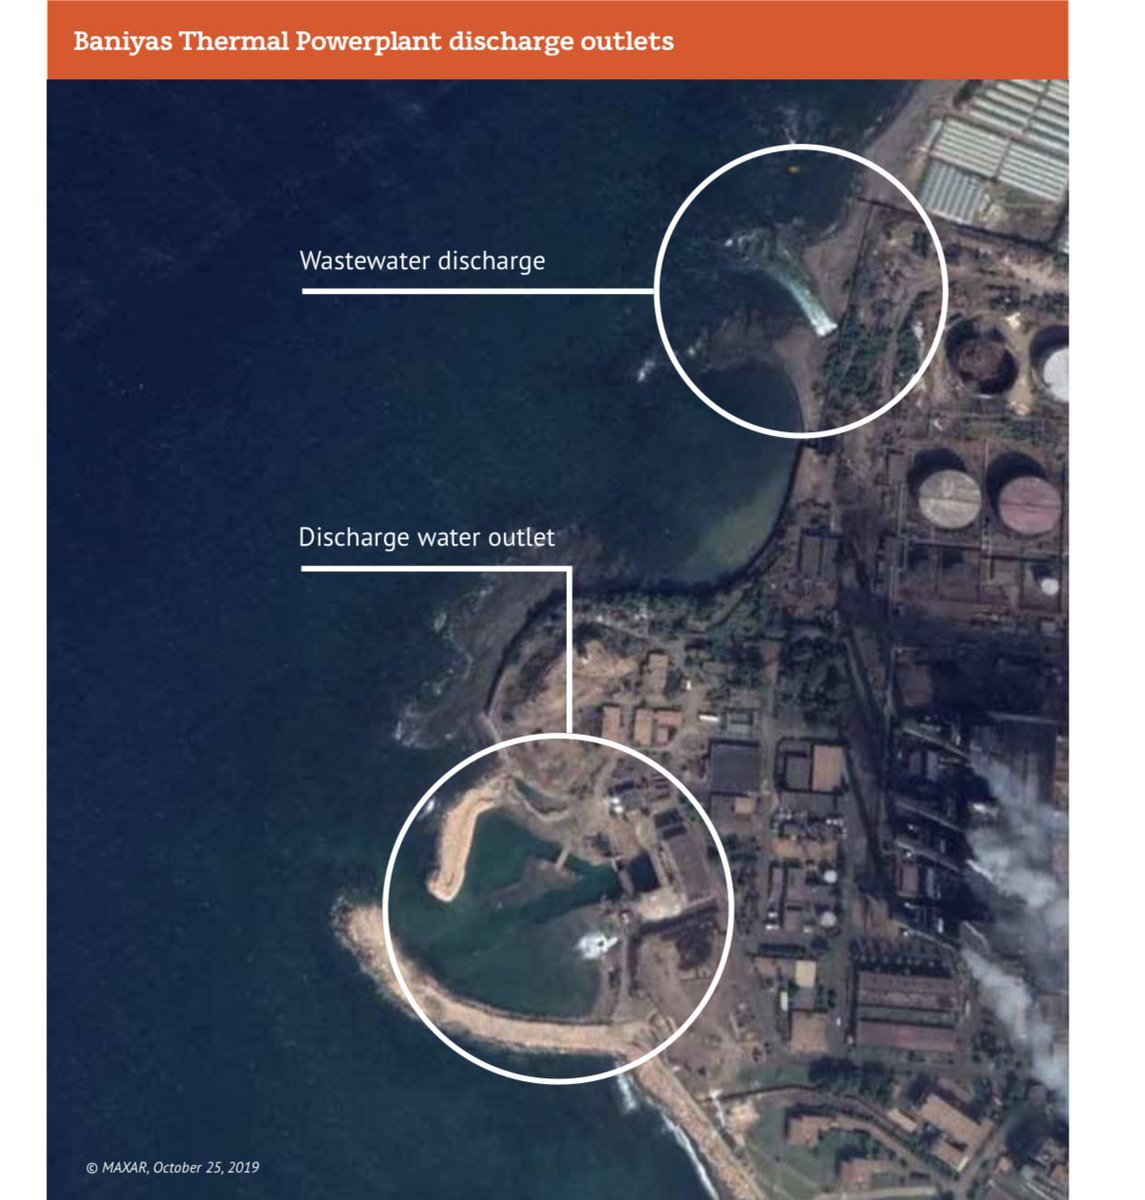 #Syria is a growing source of oil pollution in the Mediterranean and one that will grow more threatening to marine ecosystems and littoral states as the conflict continues.